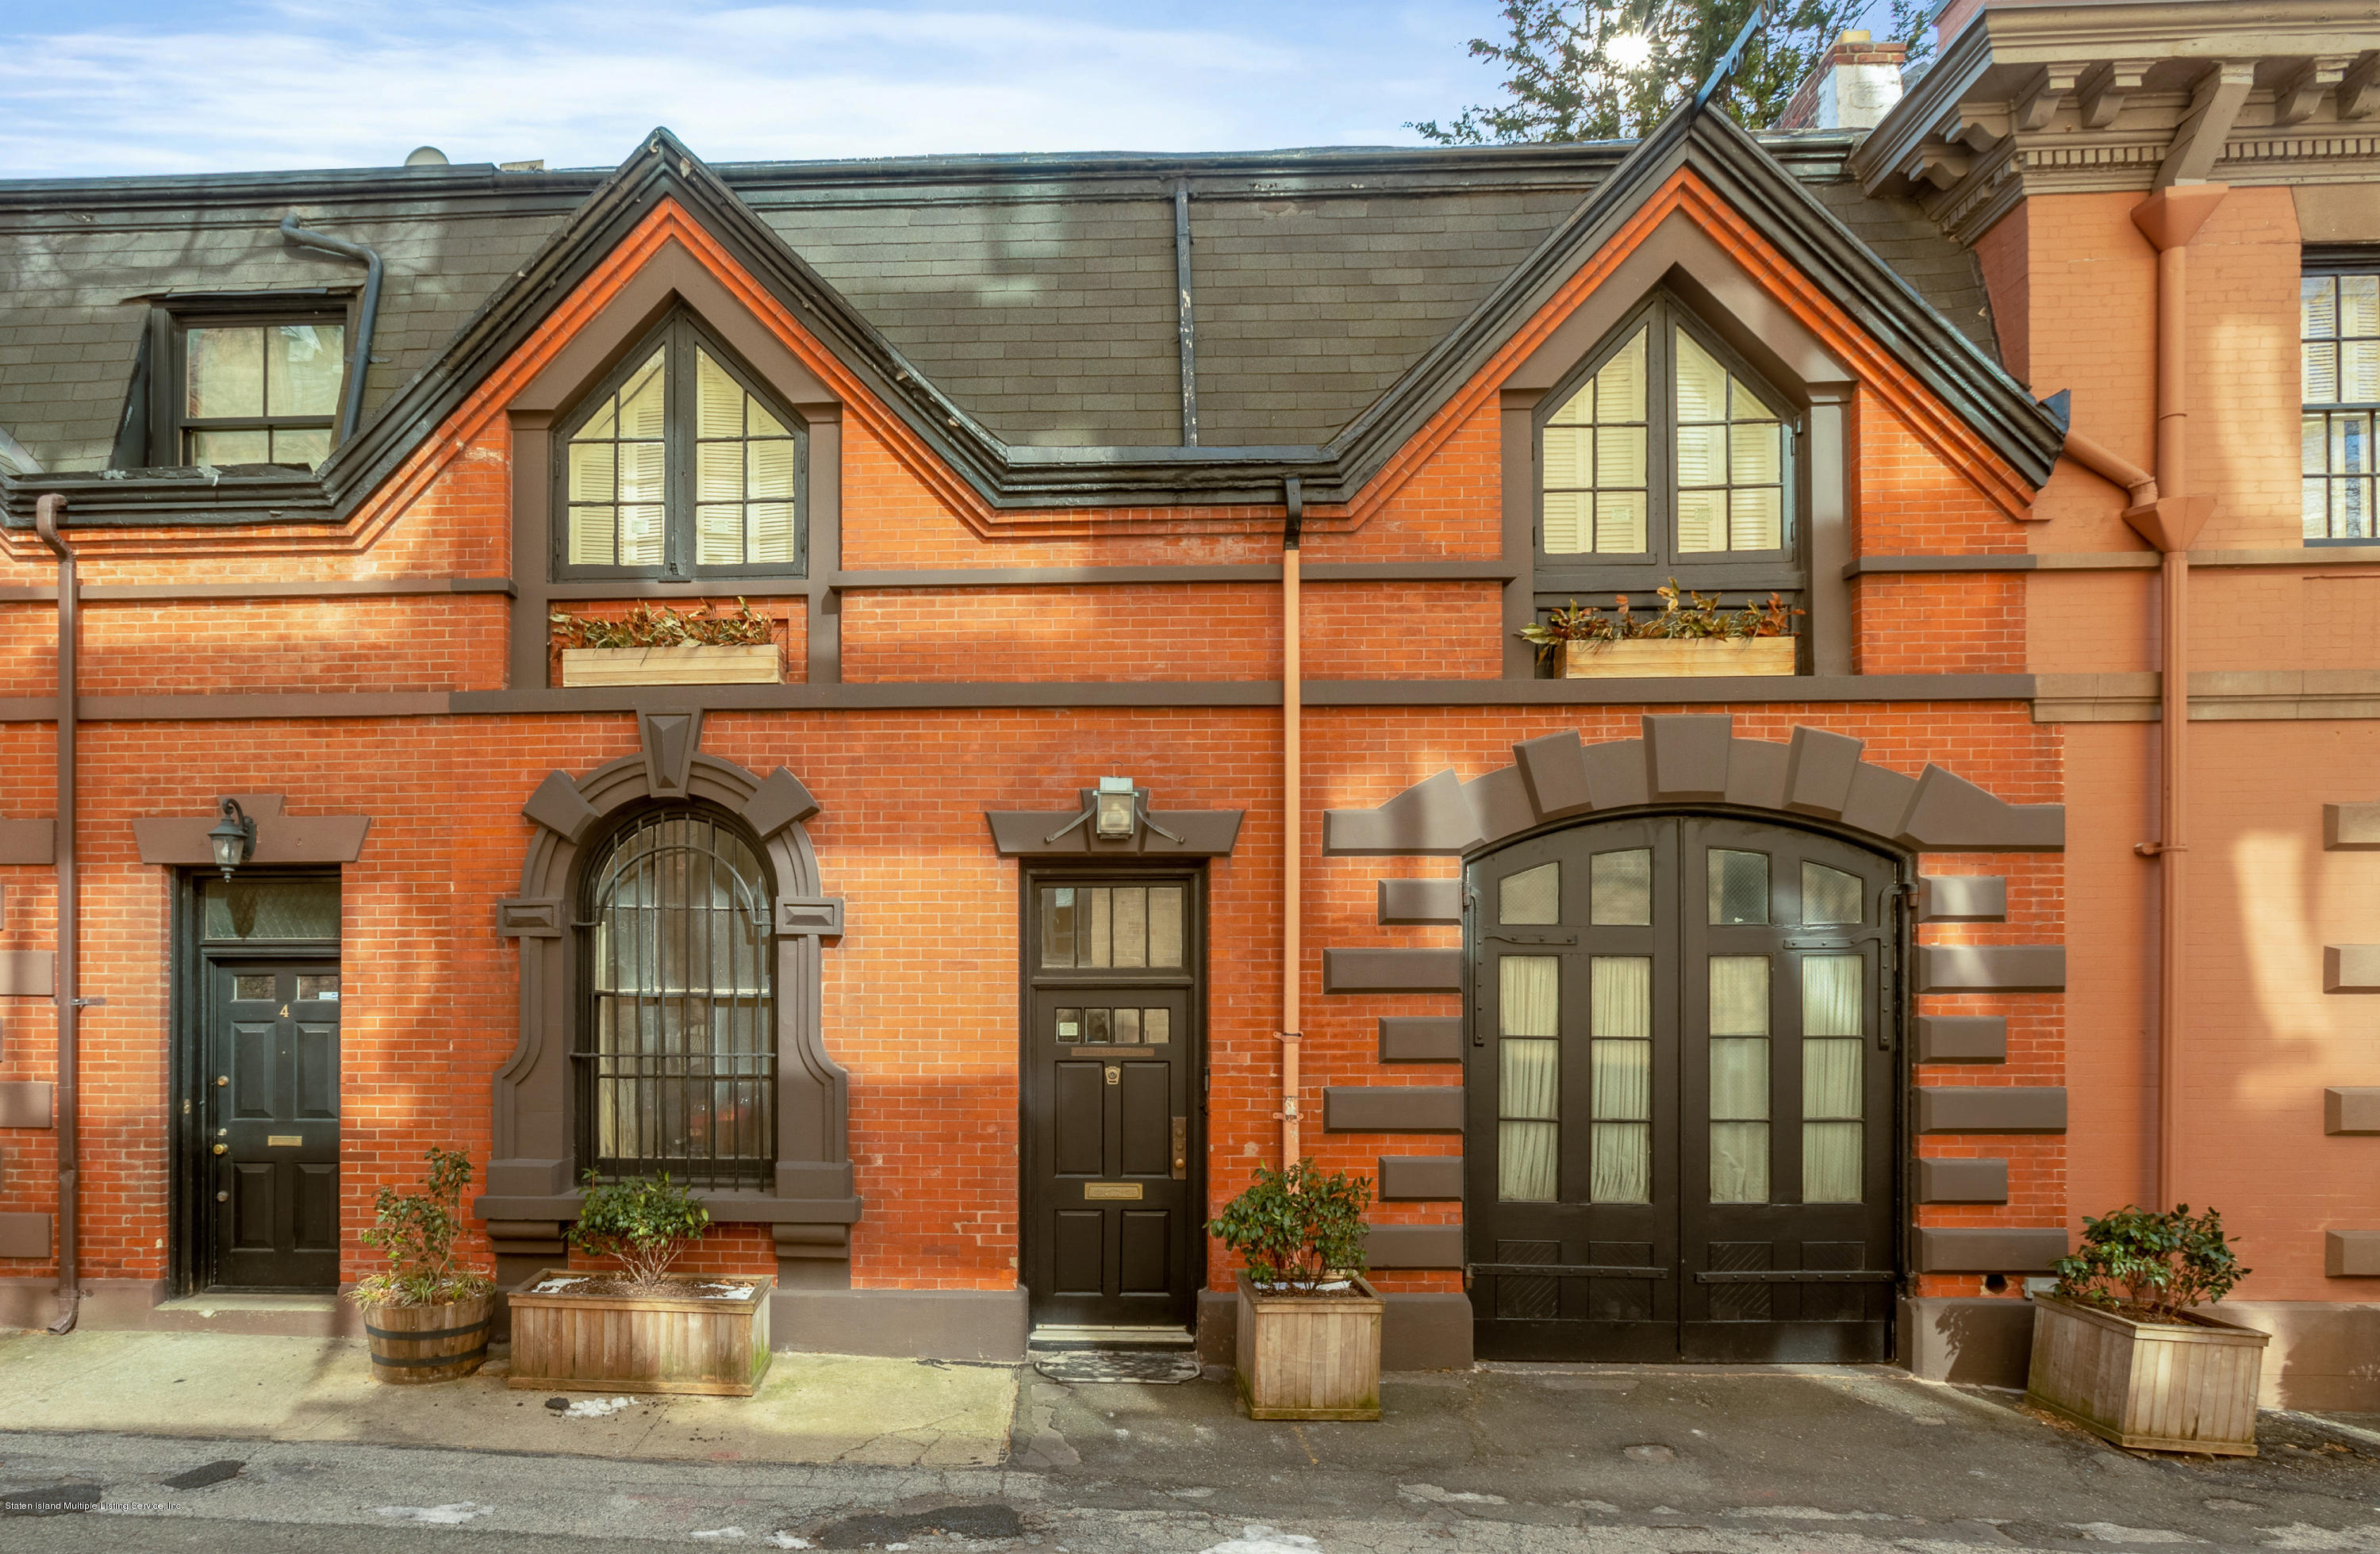 Single Family - Attached in Brooklyn Heights - 2 Grace Court  Brooklyn, NY 11201